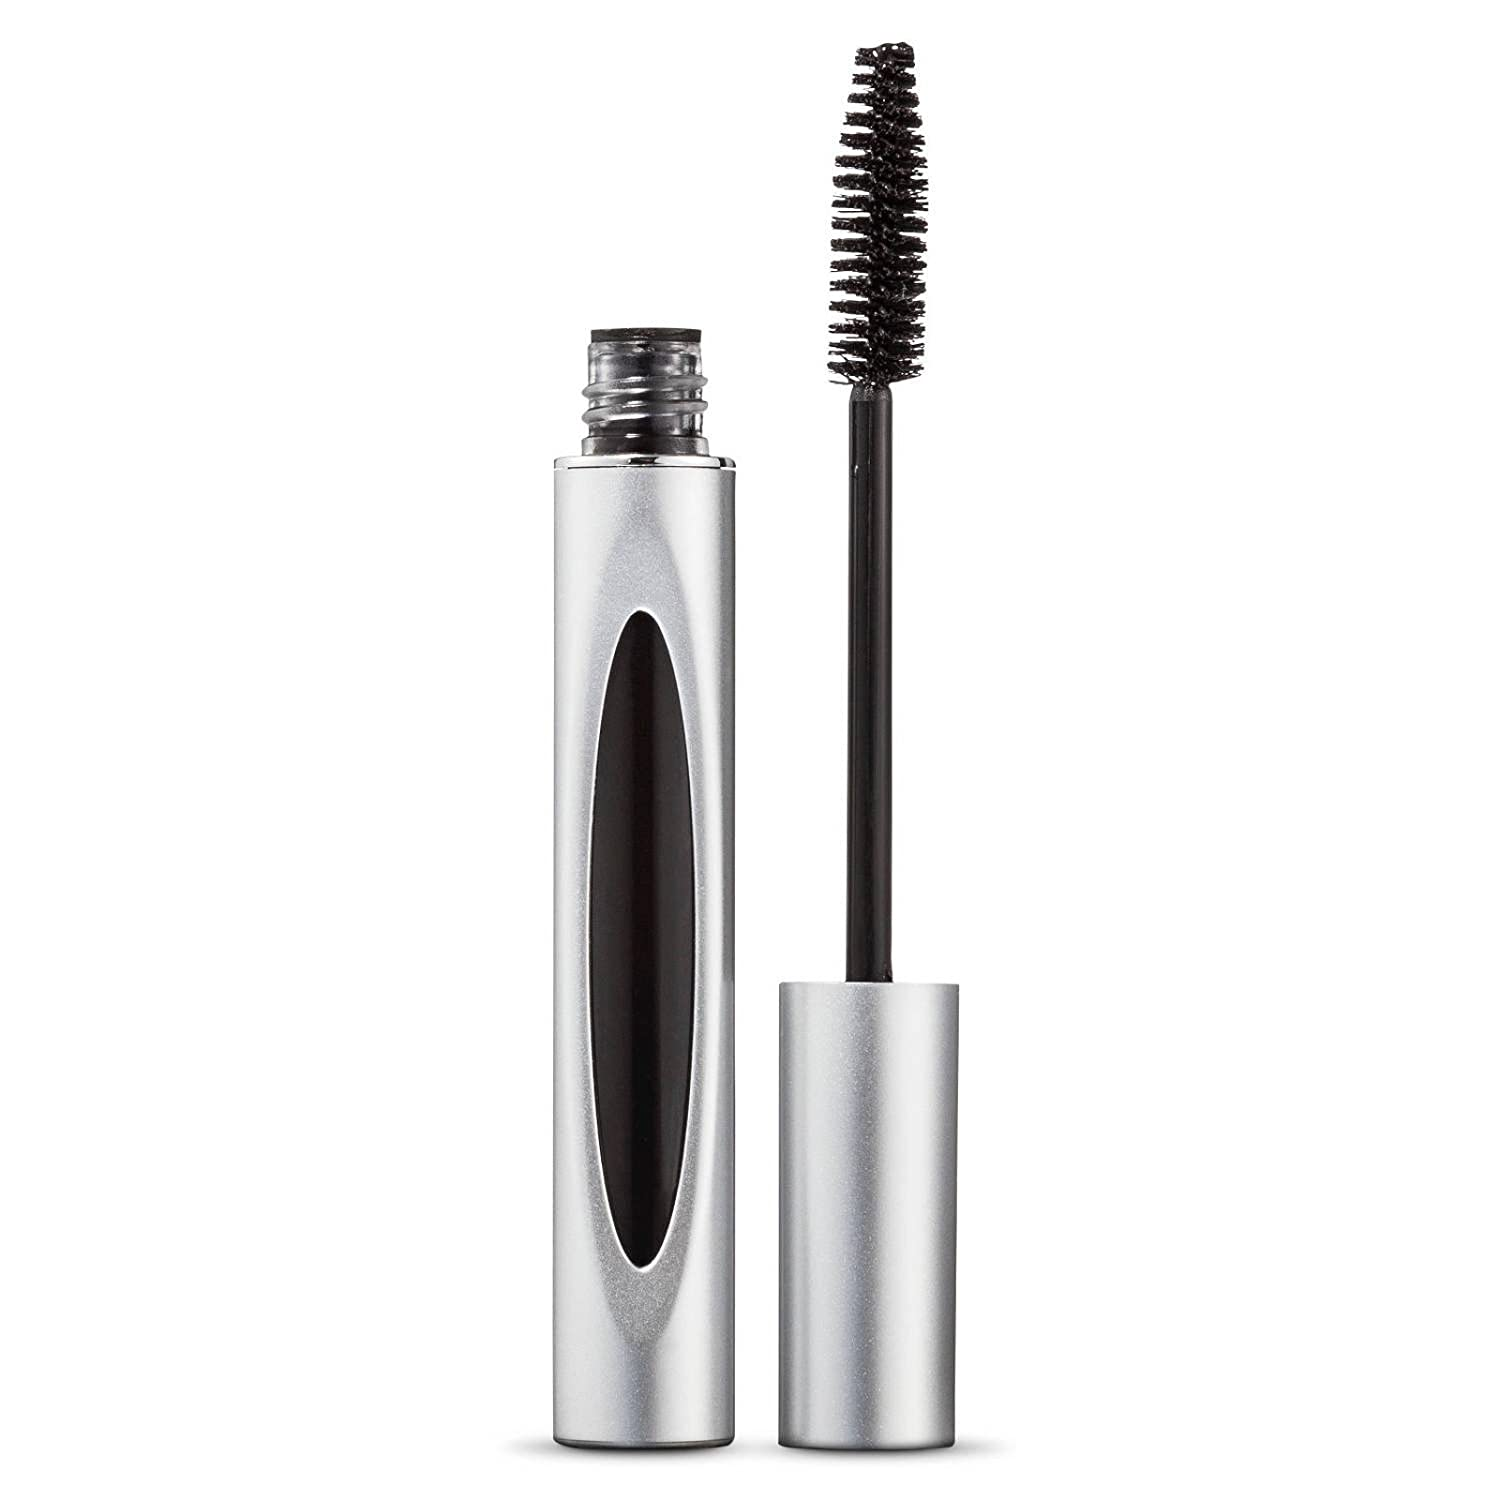 Honeybee Gardens Truly Natural Mascara, Black Magic 0.17 ounces